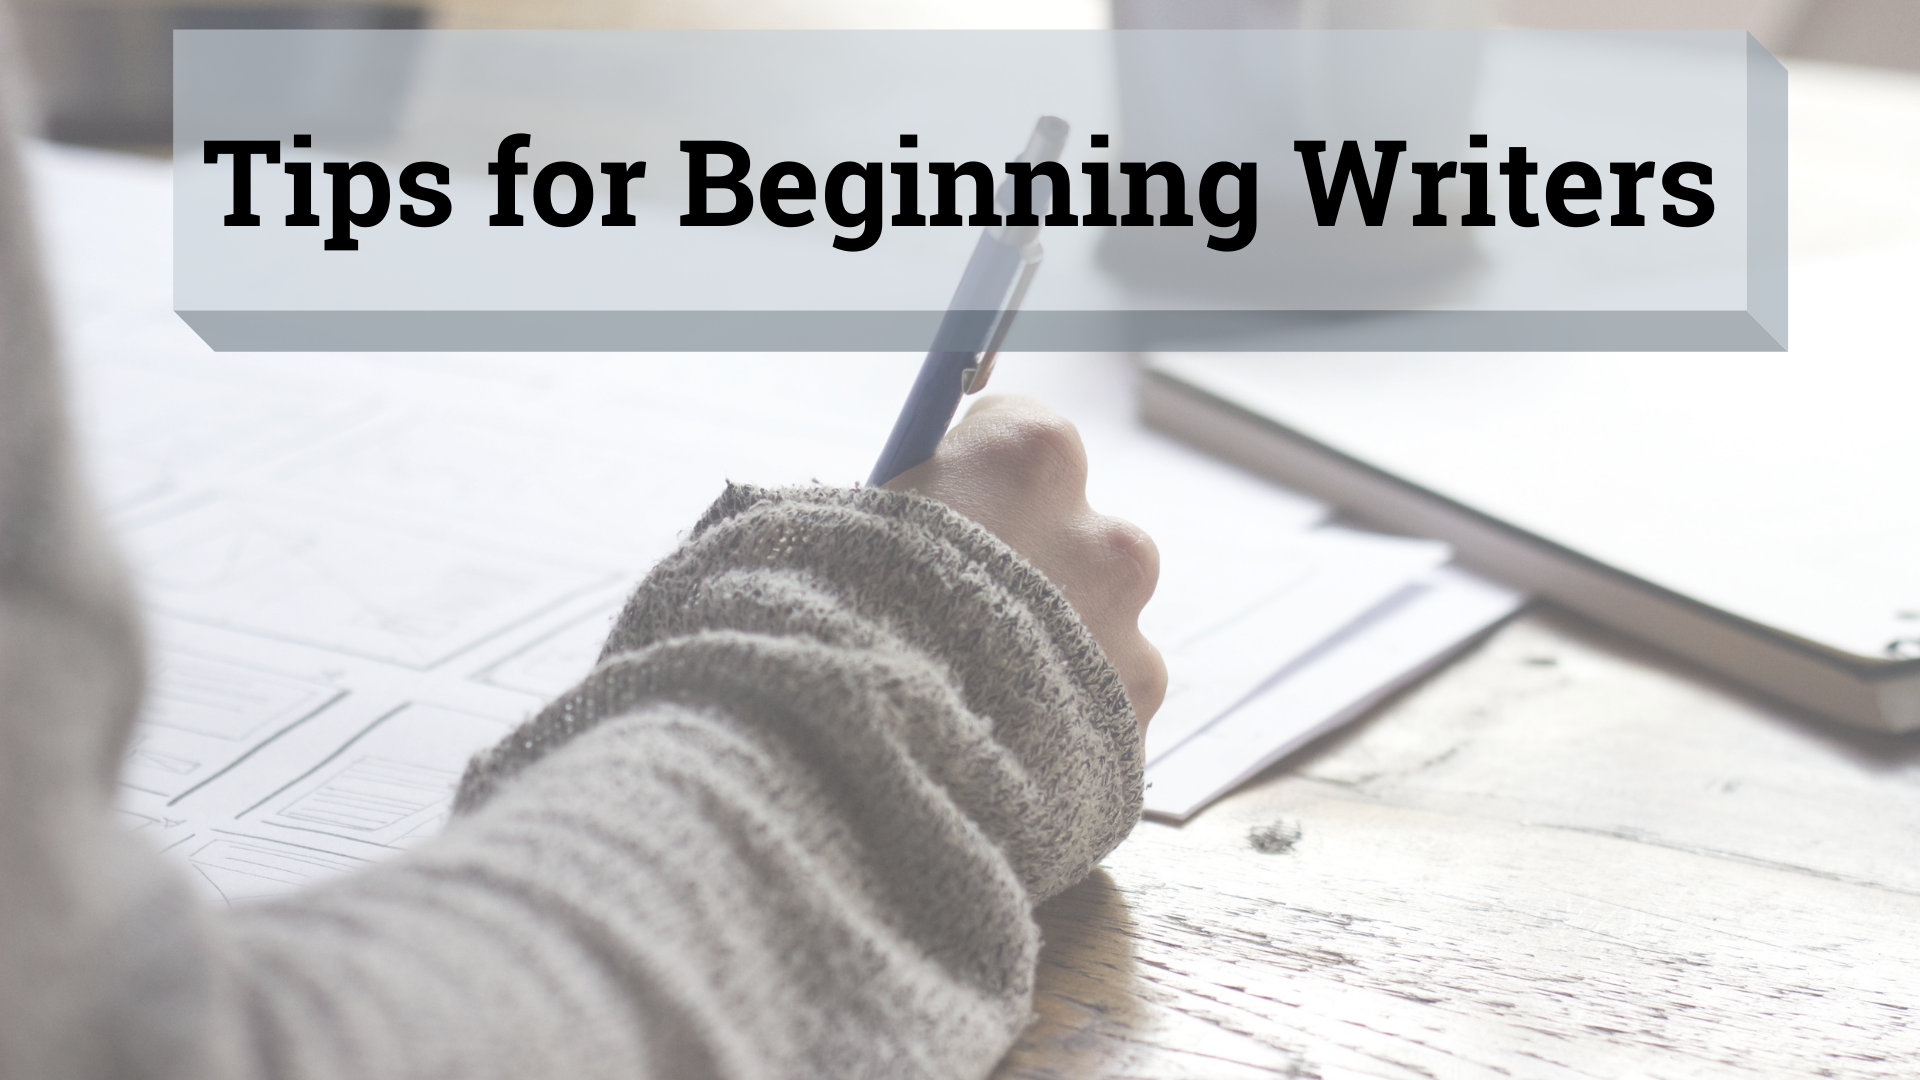 Tips for Beginning Writers